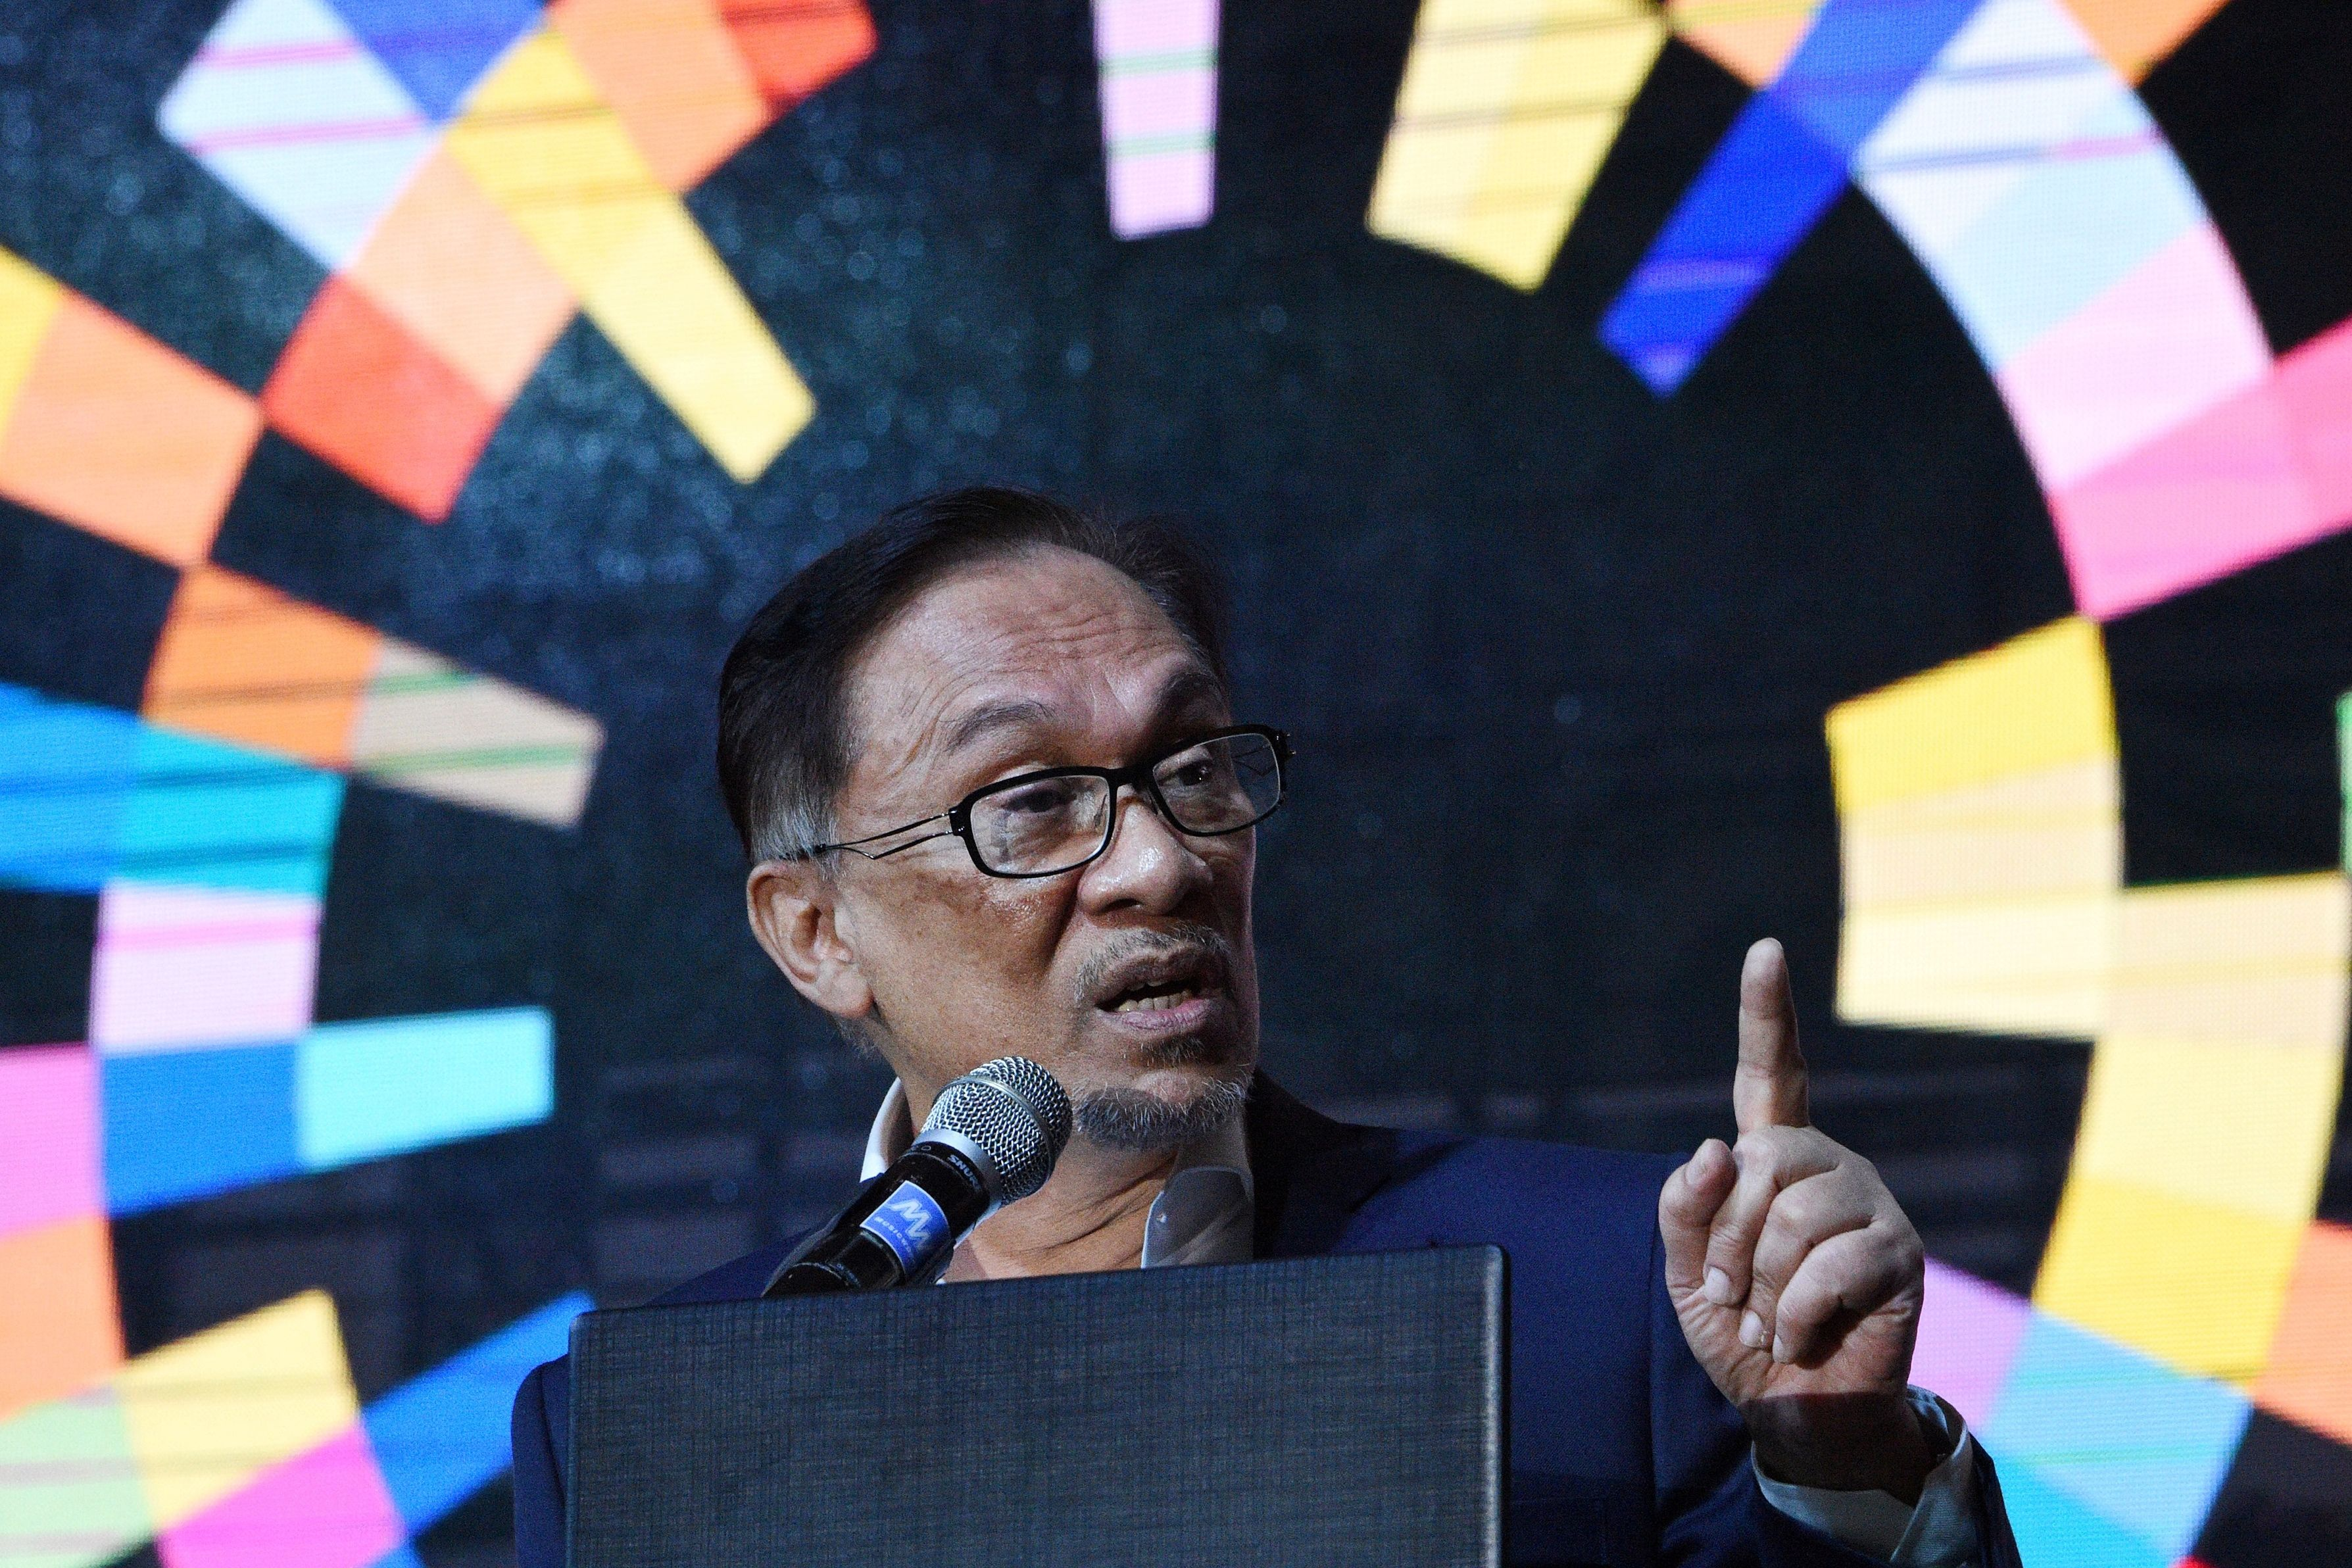 Malaysia's former deputy prime minister Anwar Ibrahim delivers a speech during a CEO conference organised by a local management association in Manila on September 4, 2018. - Anwar was jailed in 2015 on sodomy charges that critics say were politically motivated and then released in May 2018 after then-Prime Minister Najib Razak's election defeat. (Photo by TED ALJIBE / AFP) (Photo credit should read TED ALJIBE/AFP/Getty Images)